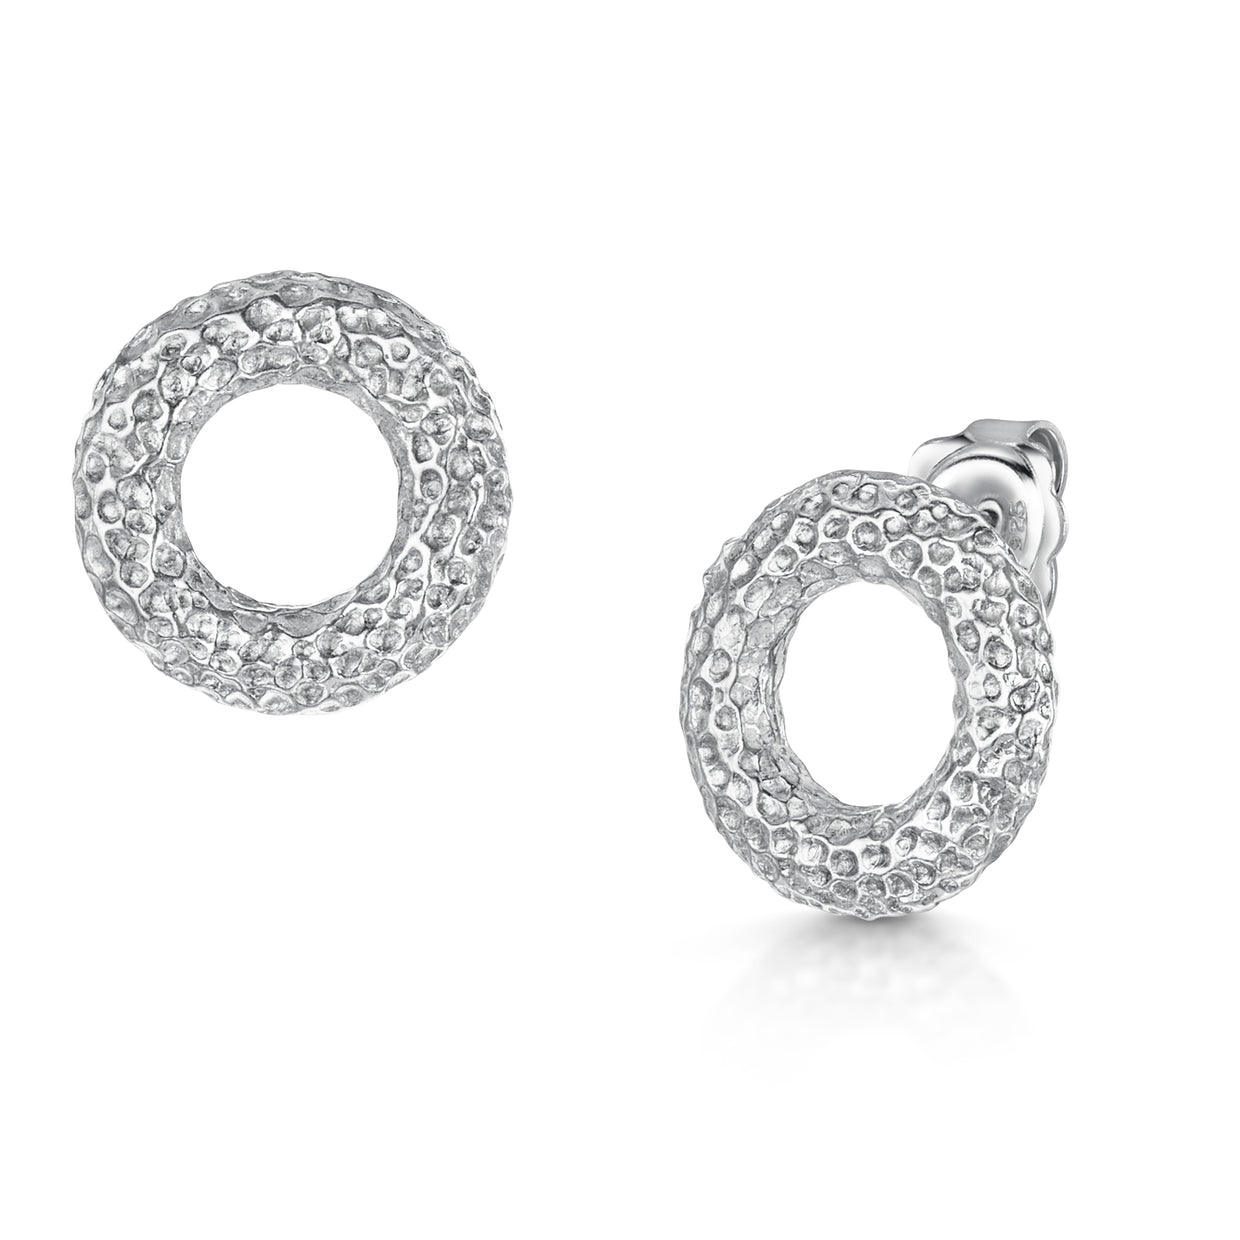 Hamilton & Inches Sterling Silver Donut Earrings - Hamilton & Inches